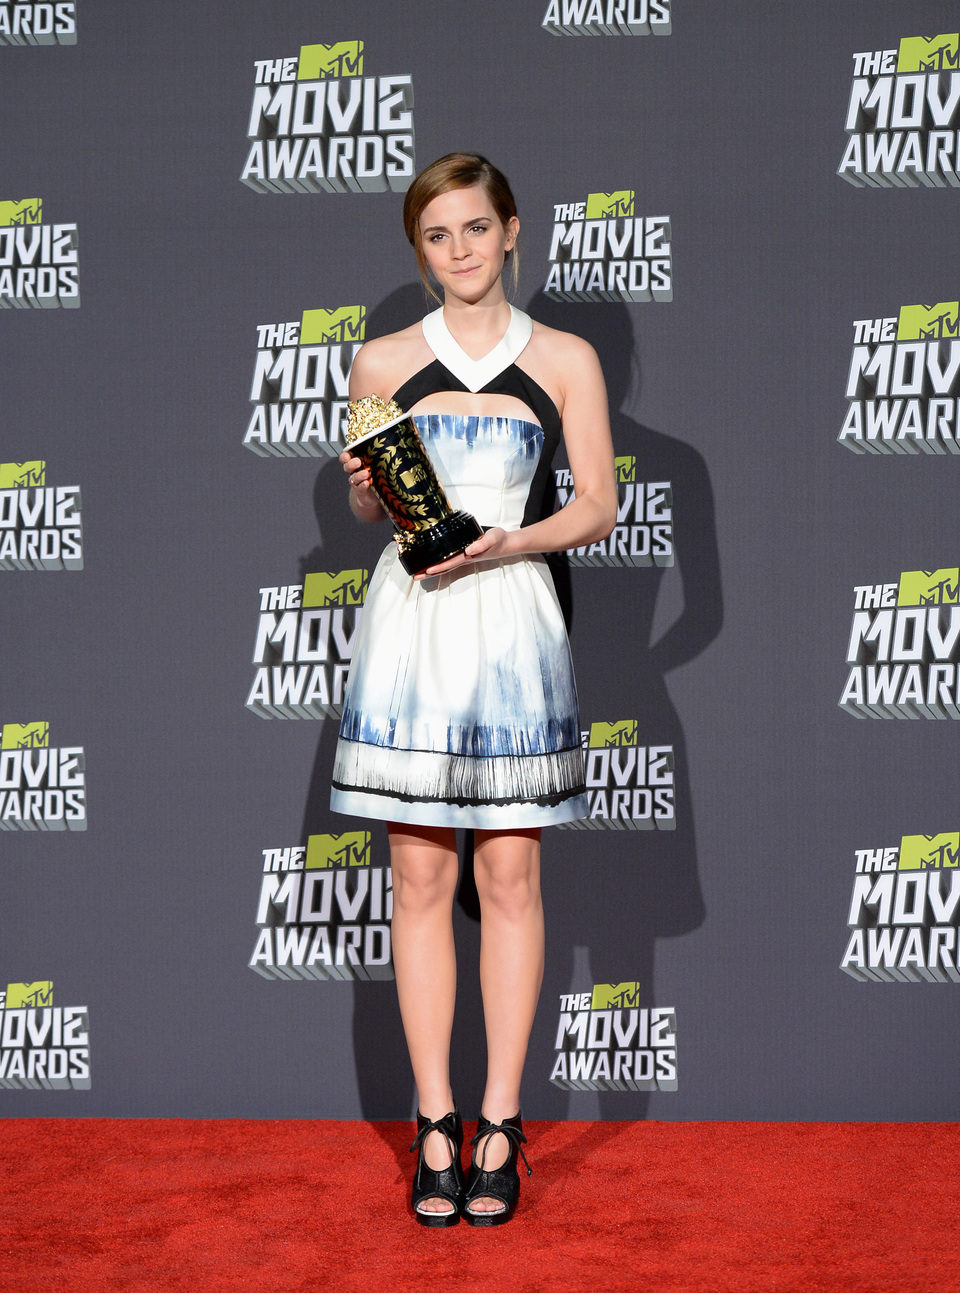 Emma Watson con su premio en los MTV Movie Awards 2013